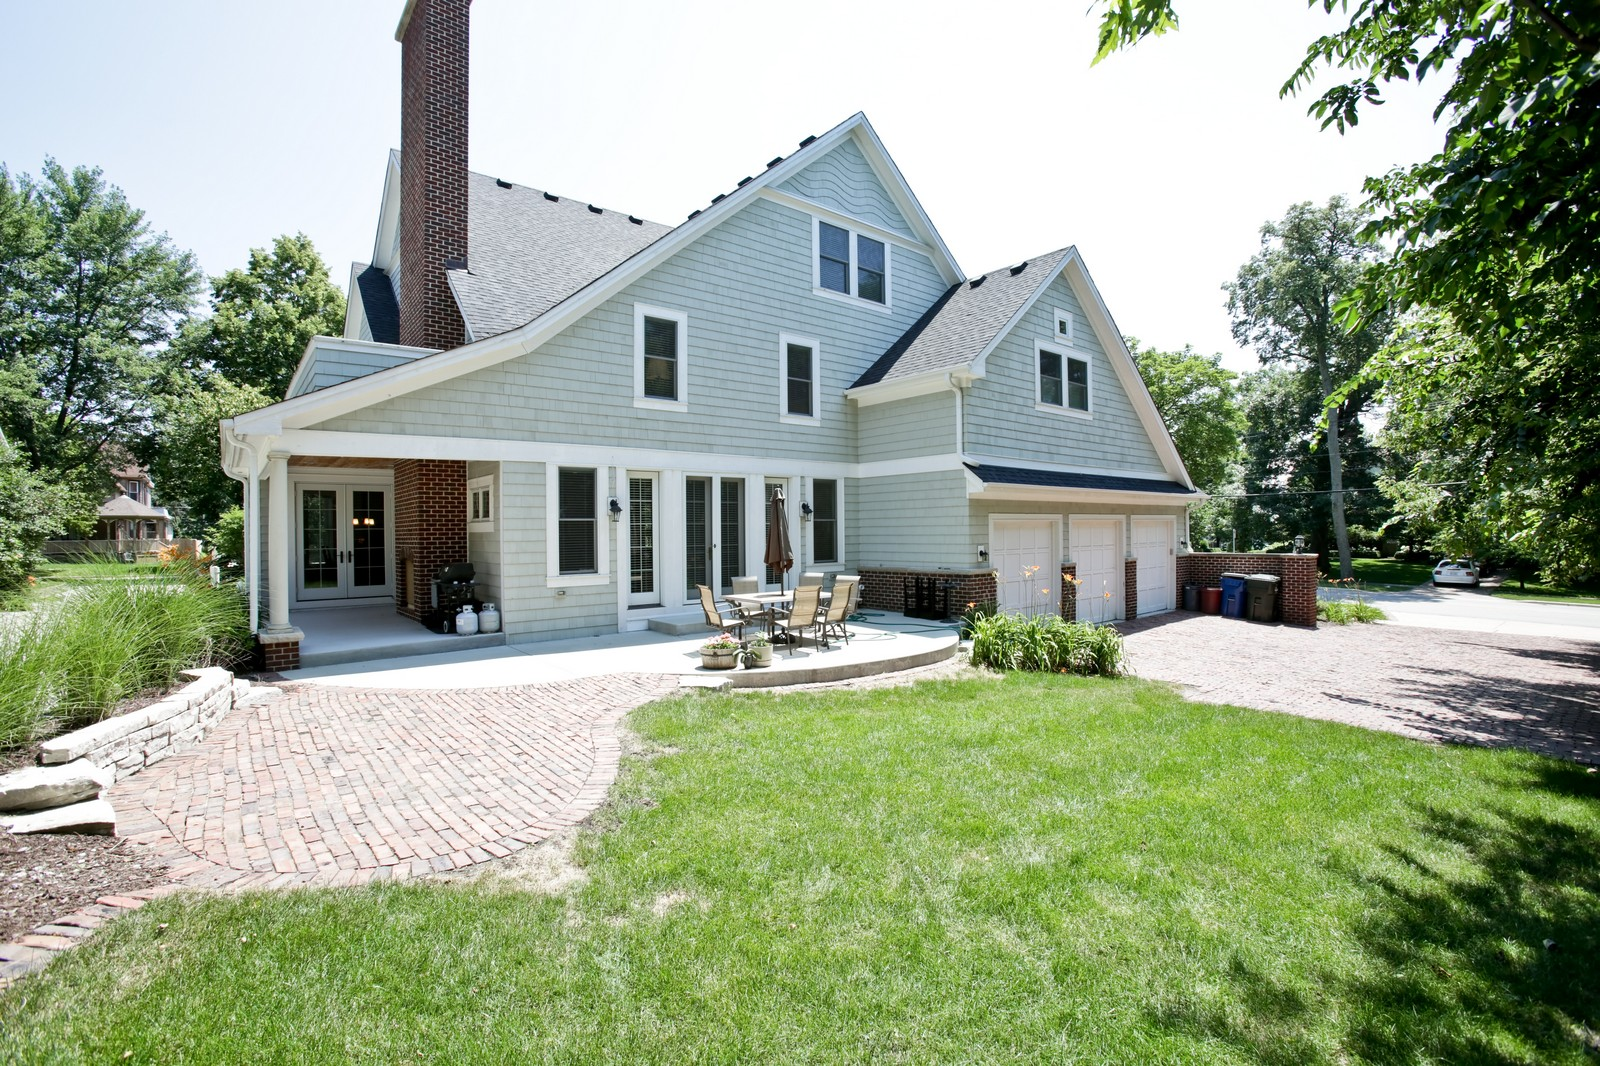 Real Estate Photography - 4740 Saratoga, Downers Grove, IL, 60515 - Rear View